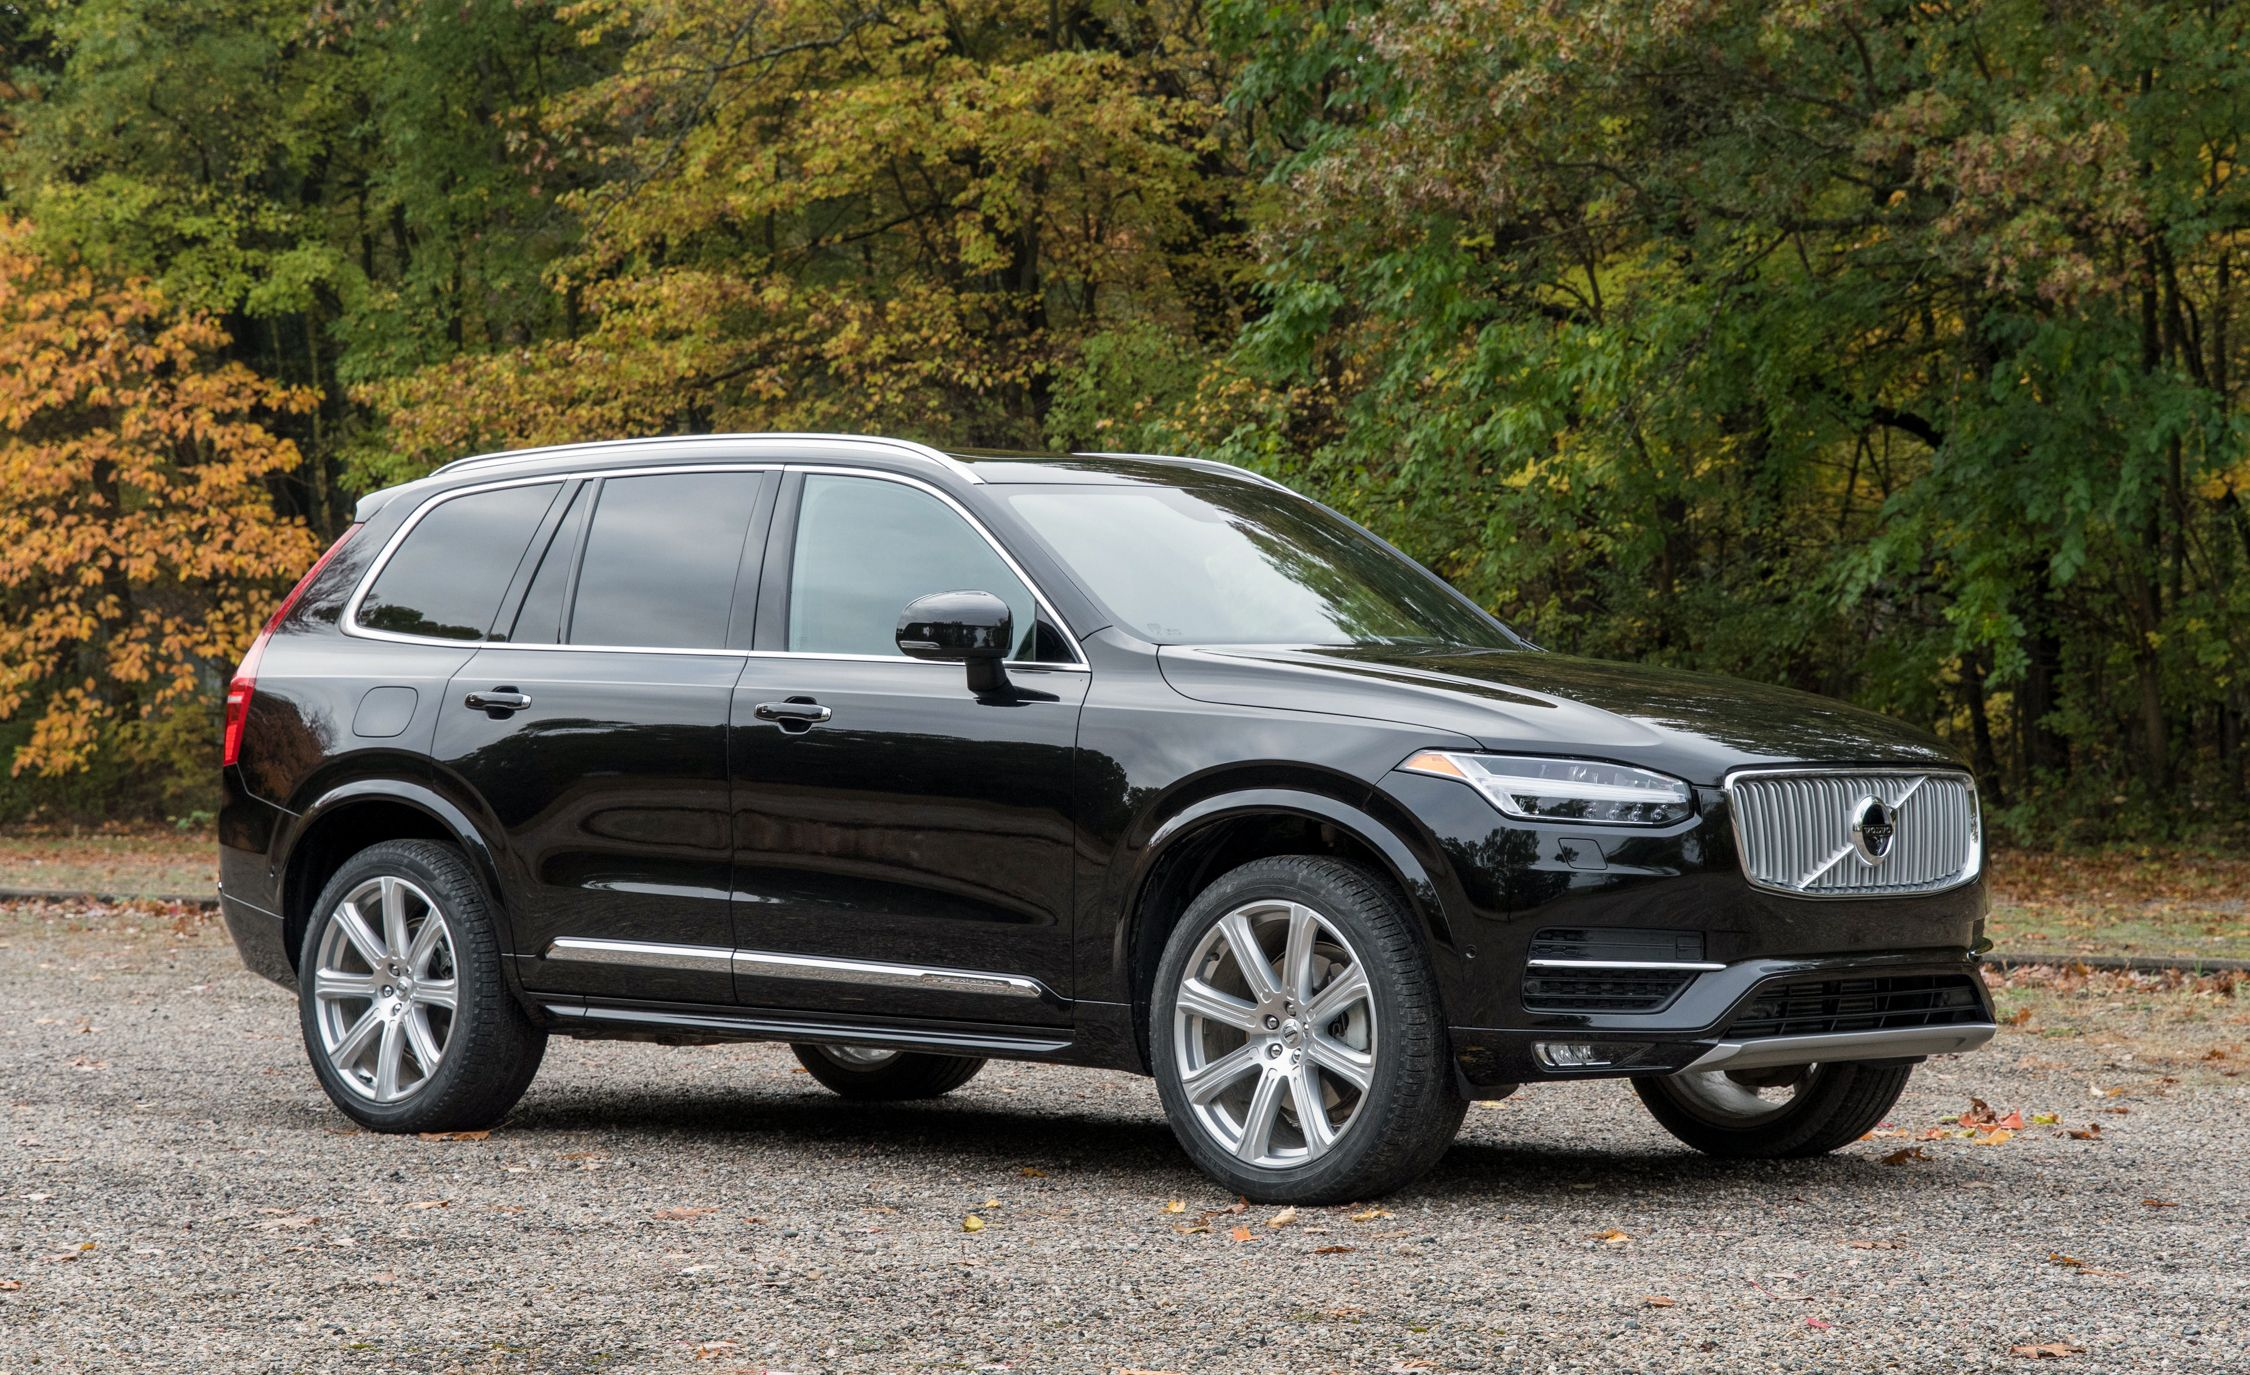 2017 Volvo XC90 | Safety and Driver Assistance Review | Car and Driver